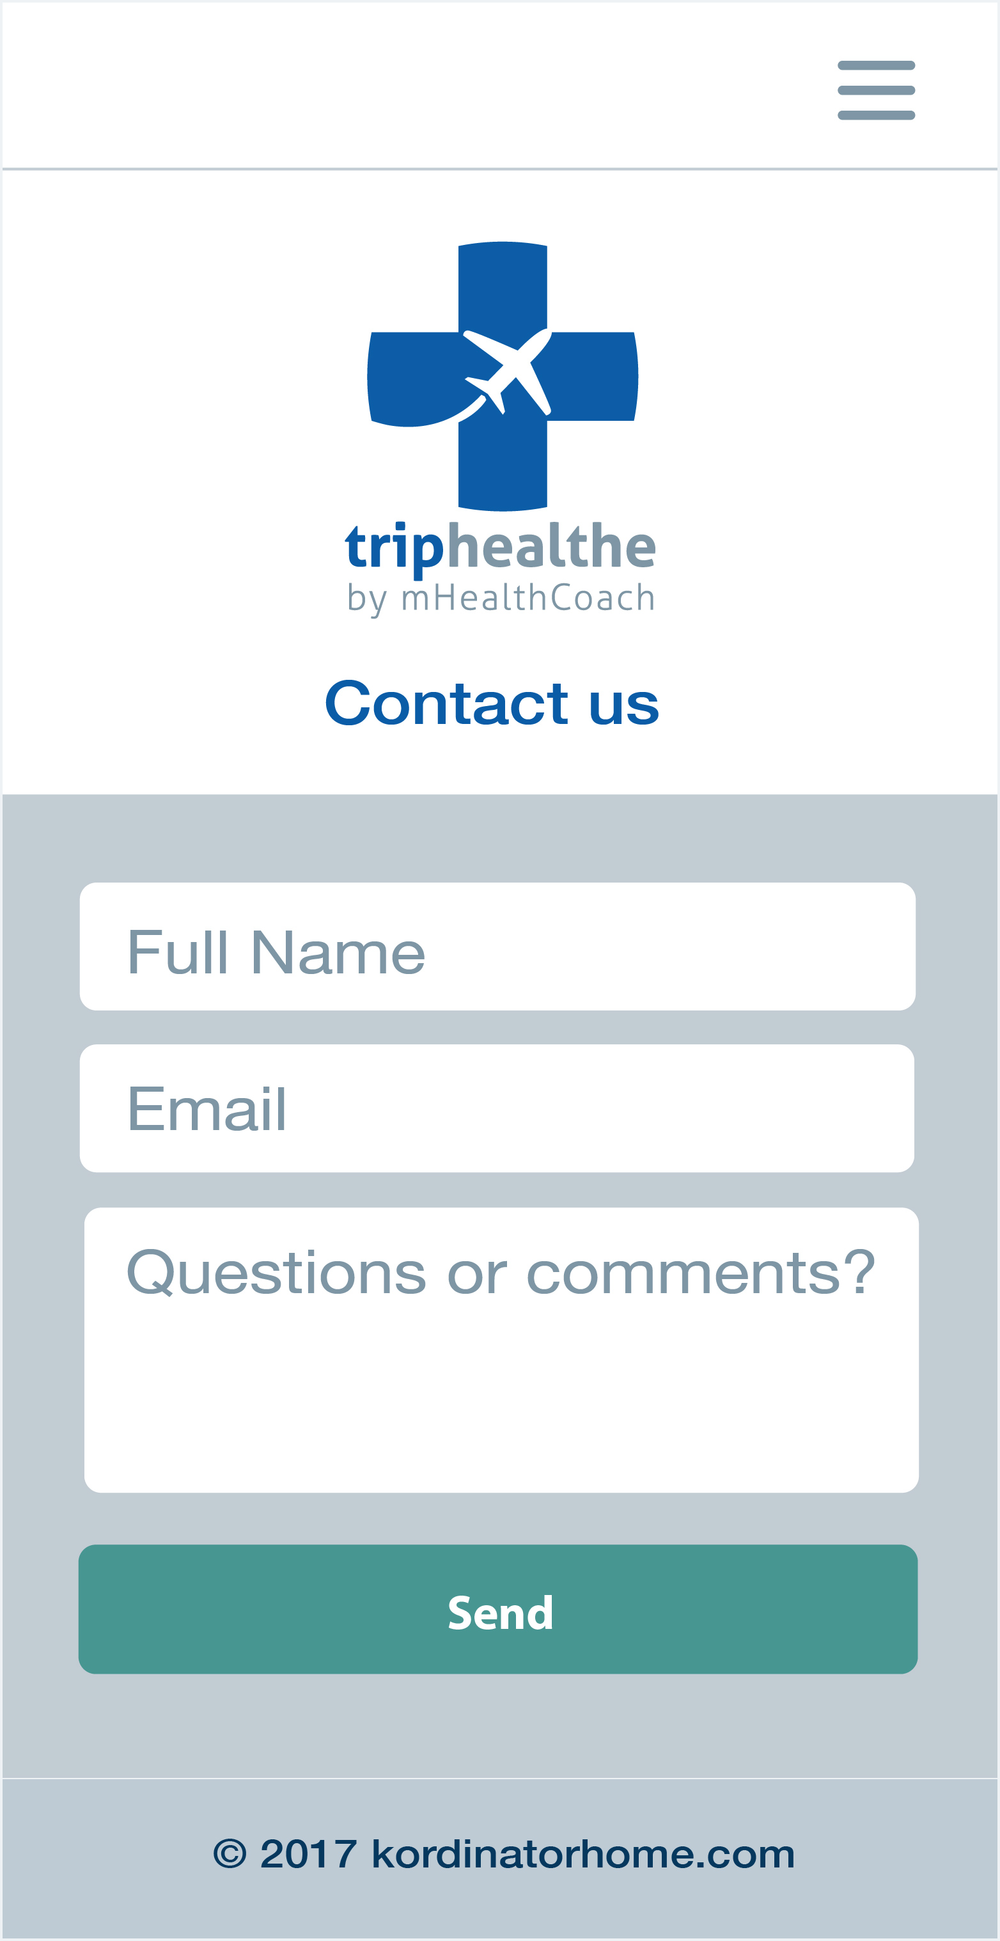 triphealhte-web-mobile_Contact.png